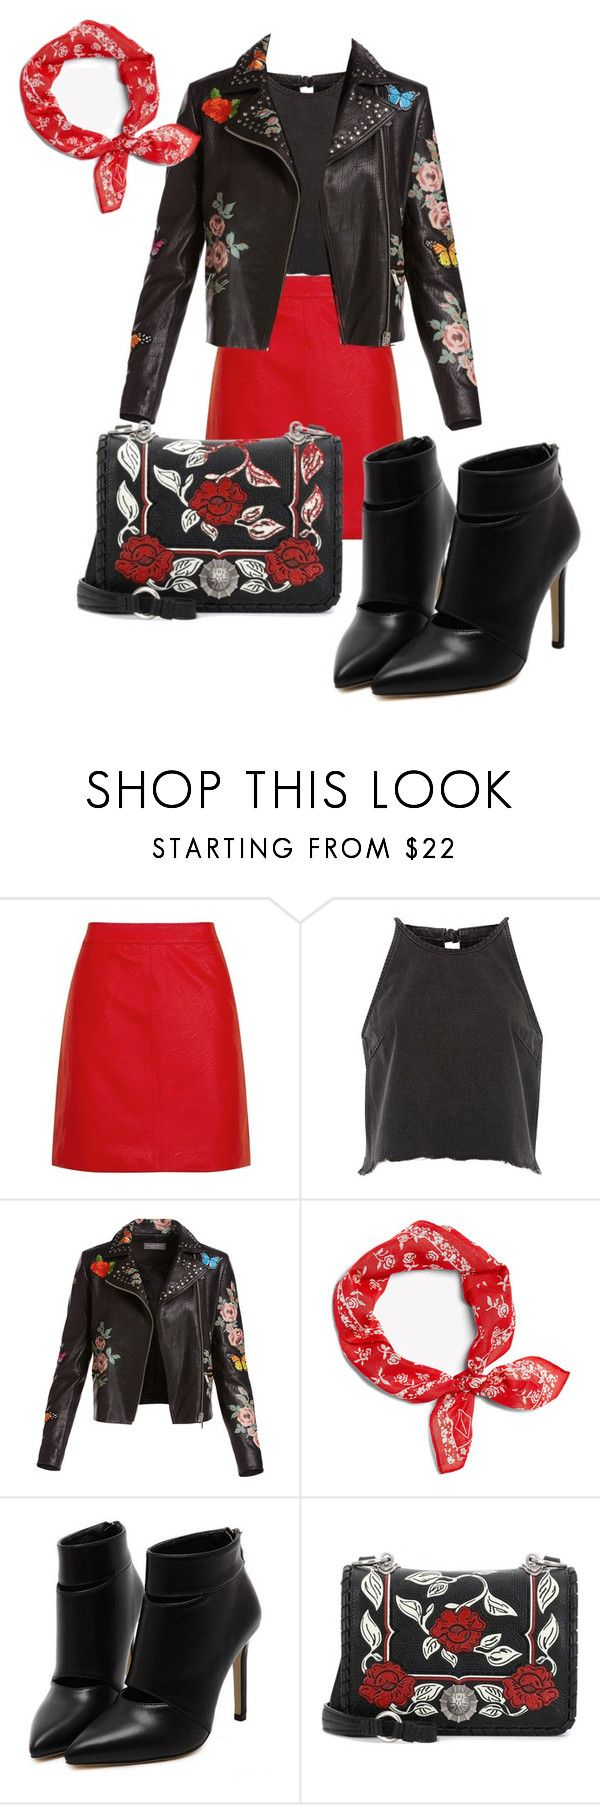 """city lights"" by nover on Polyvore featuring Topshop, River Island, Bagatelle, rag & bone and Miu Miu"